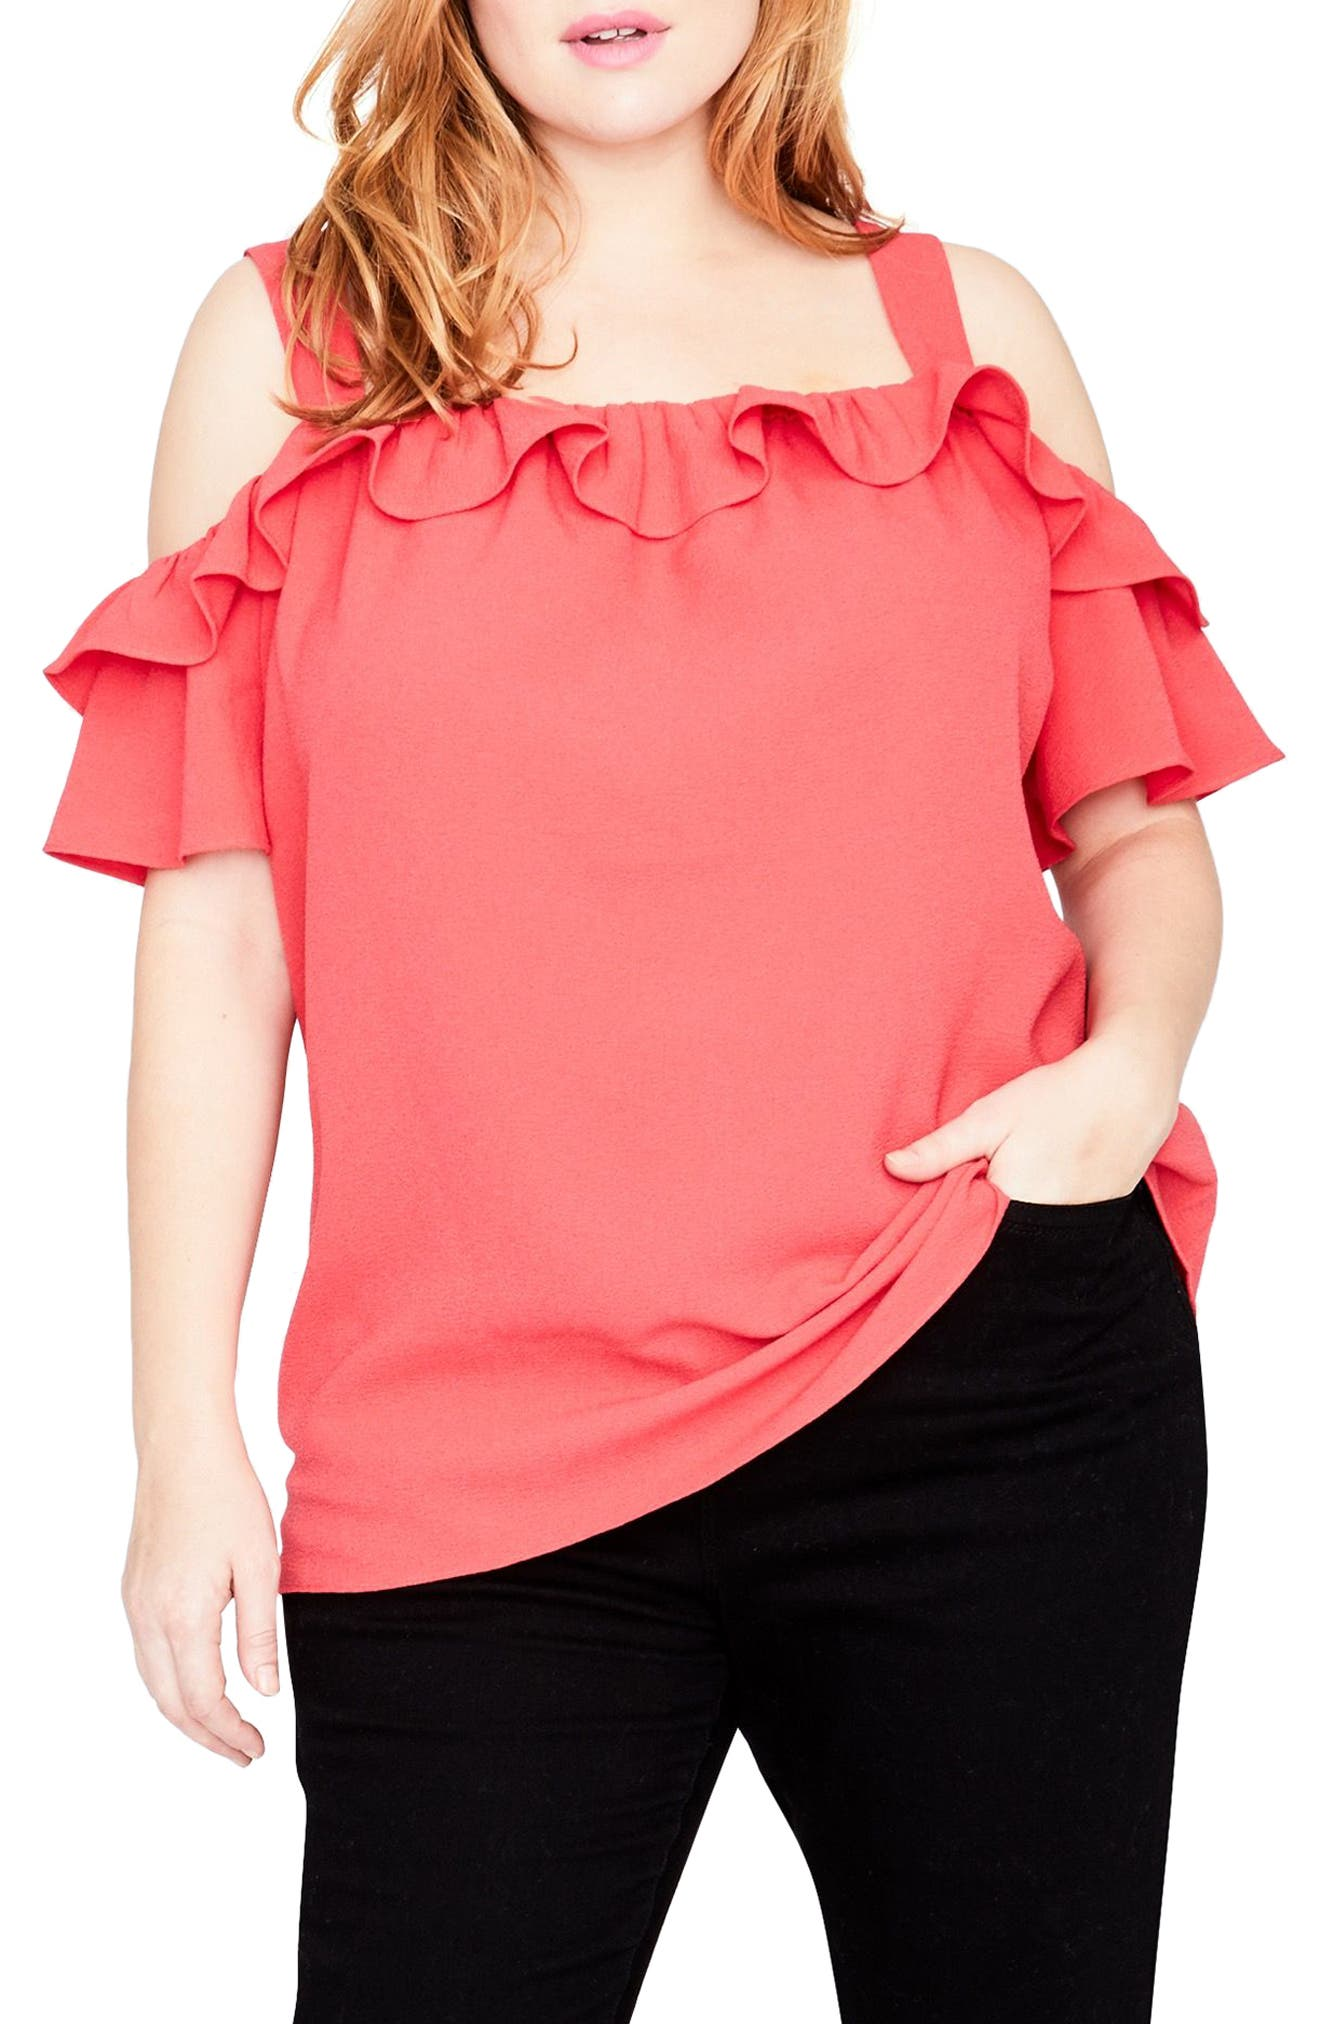 Alternate Image 1 Selected - RACHEL Rachel Roy Ruffle Edge Top (Plus Size)